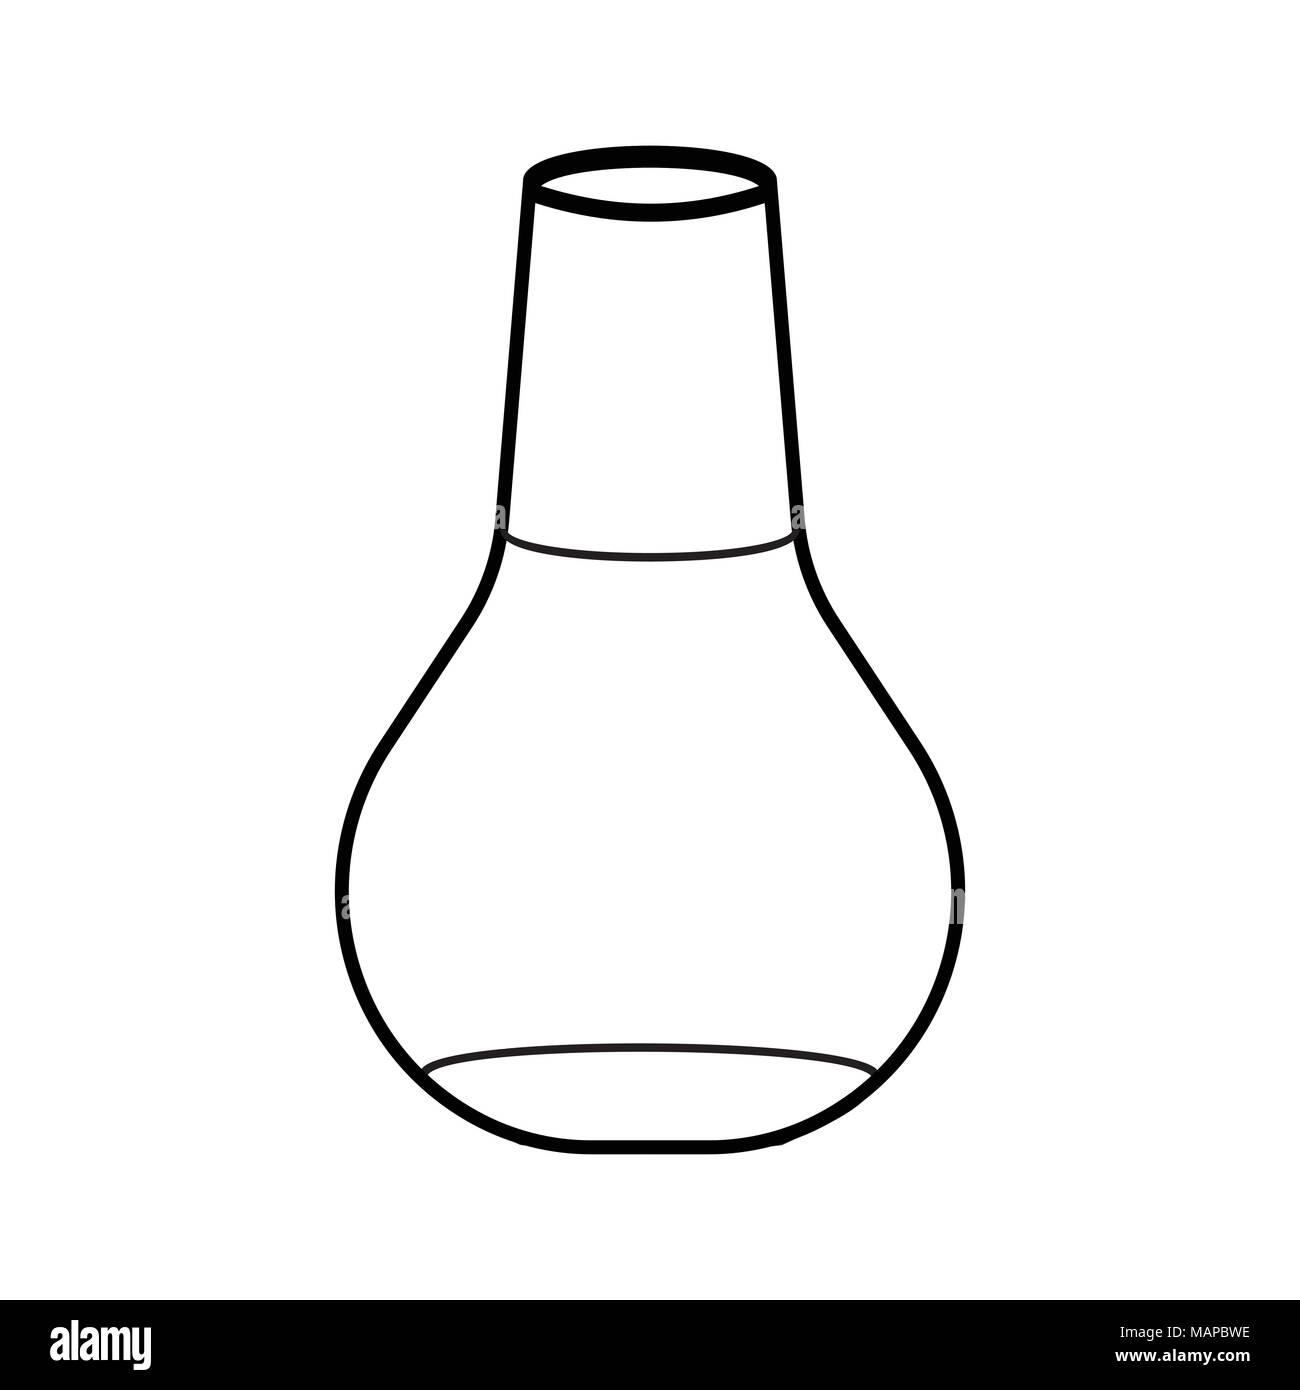 Outline Laboratory Flask icon. Schools Supplies. Isolated Vector illustration. - Stock Vector